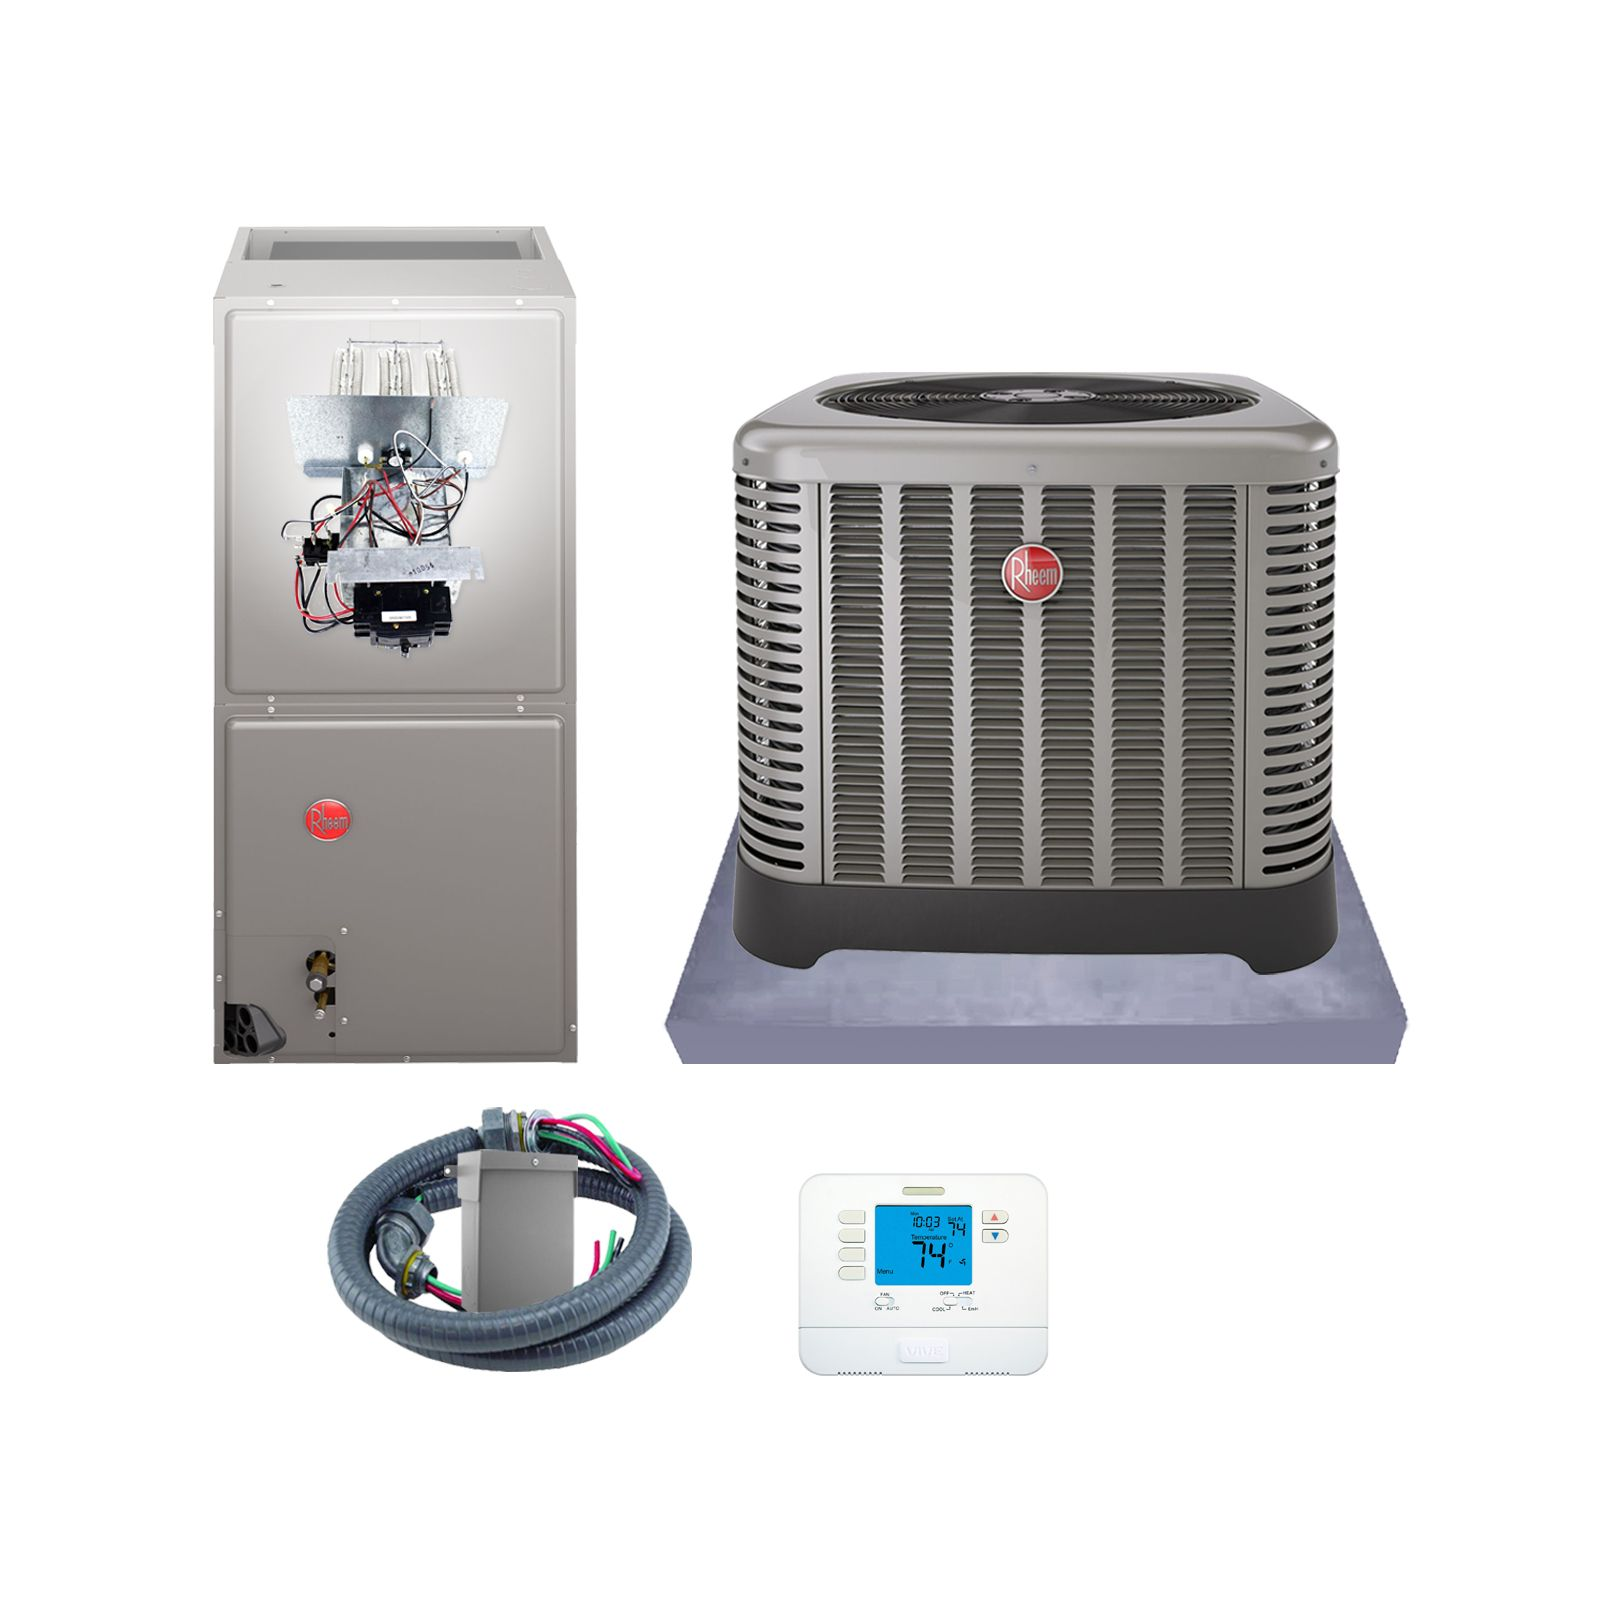 Rheem (AHRI 7512350) 3 1/2 Ton, 15 SEER/12.5 EER Classic Series, Heat Pump Split System and Install Kit